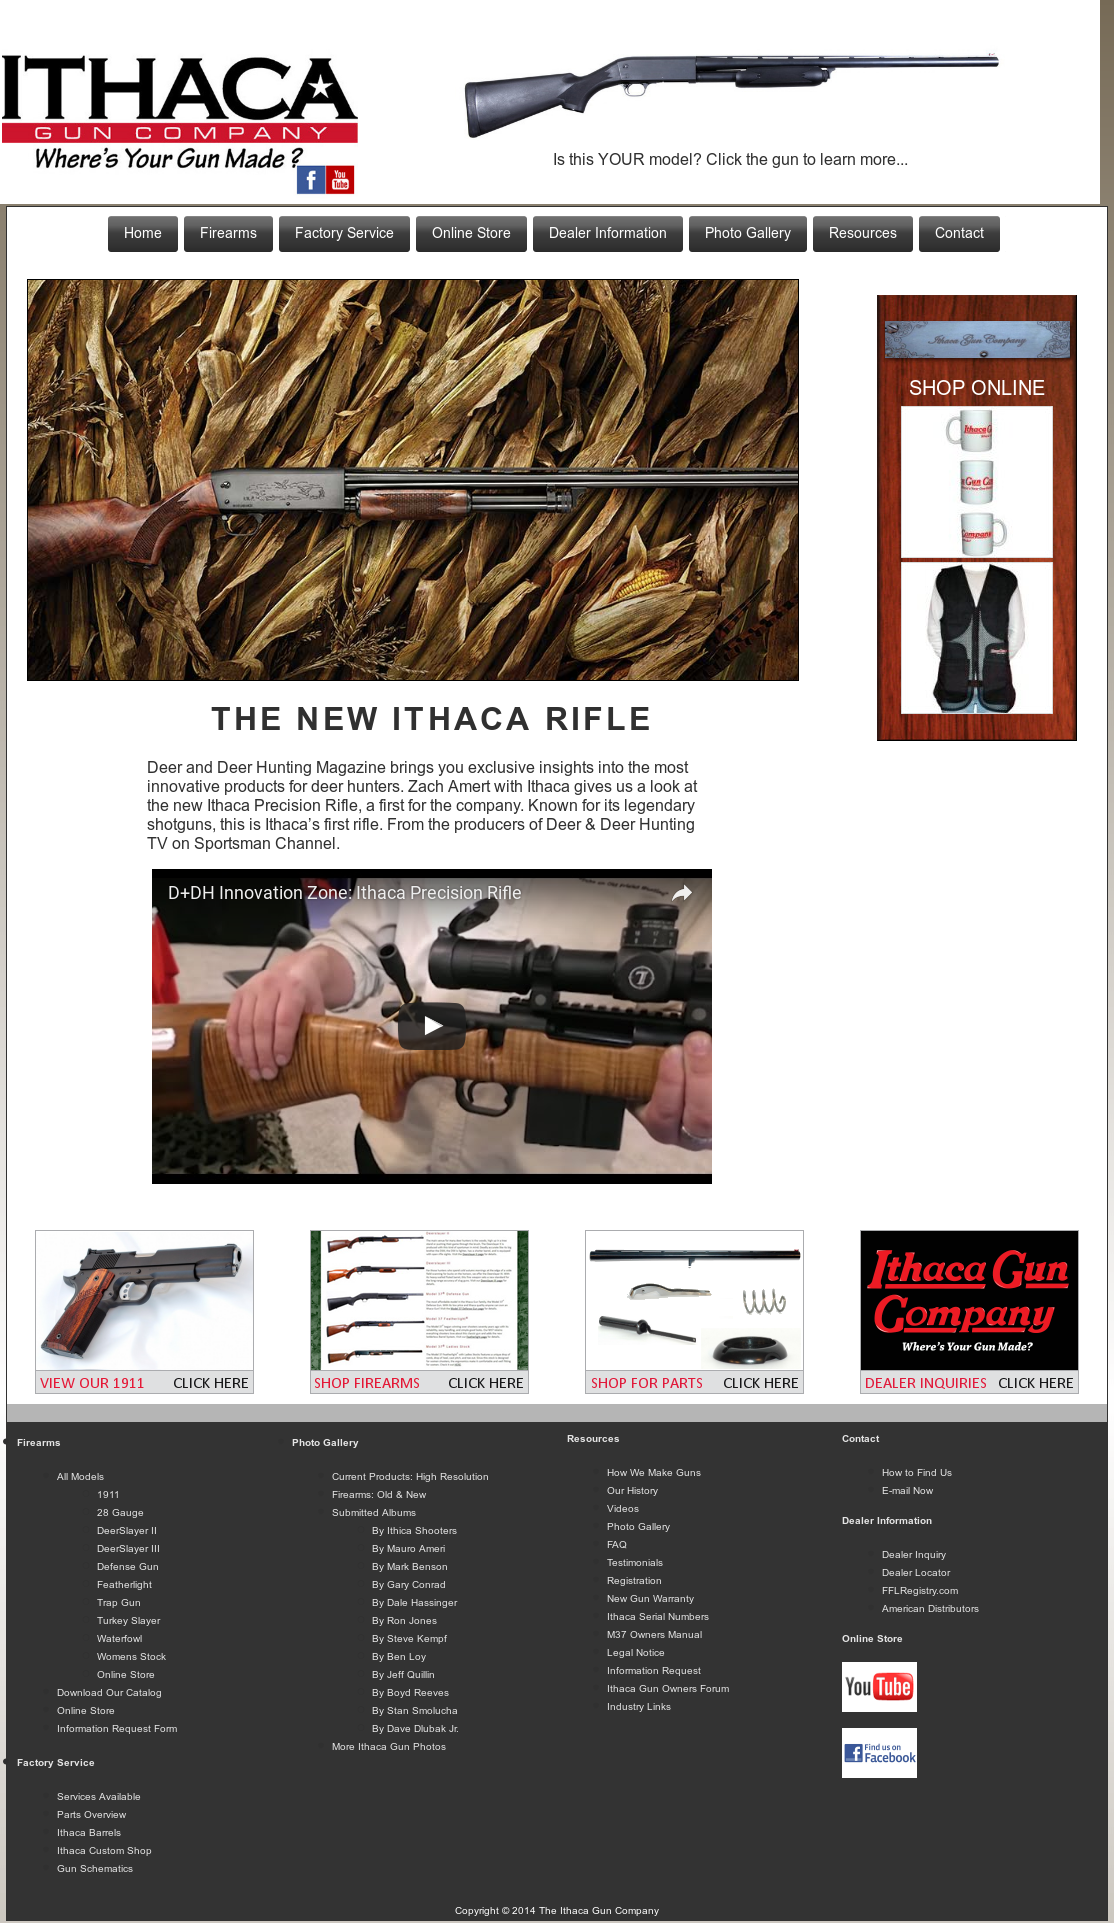 Ithaca Gun Competitors, Revenue and Employees - Owler